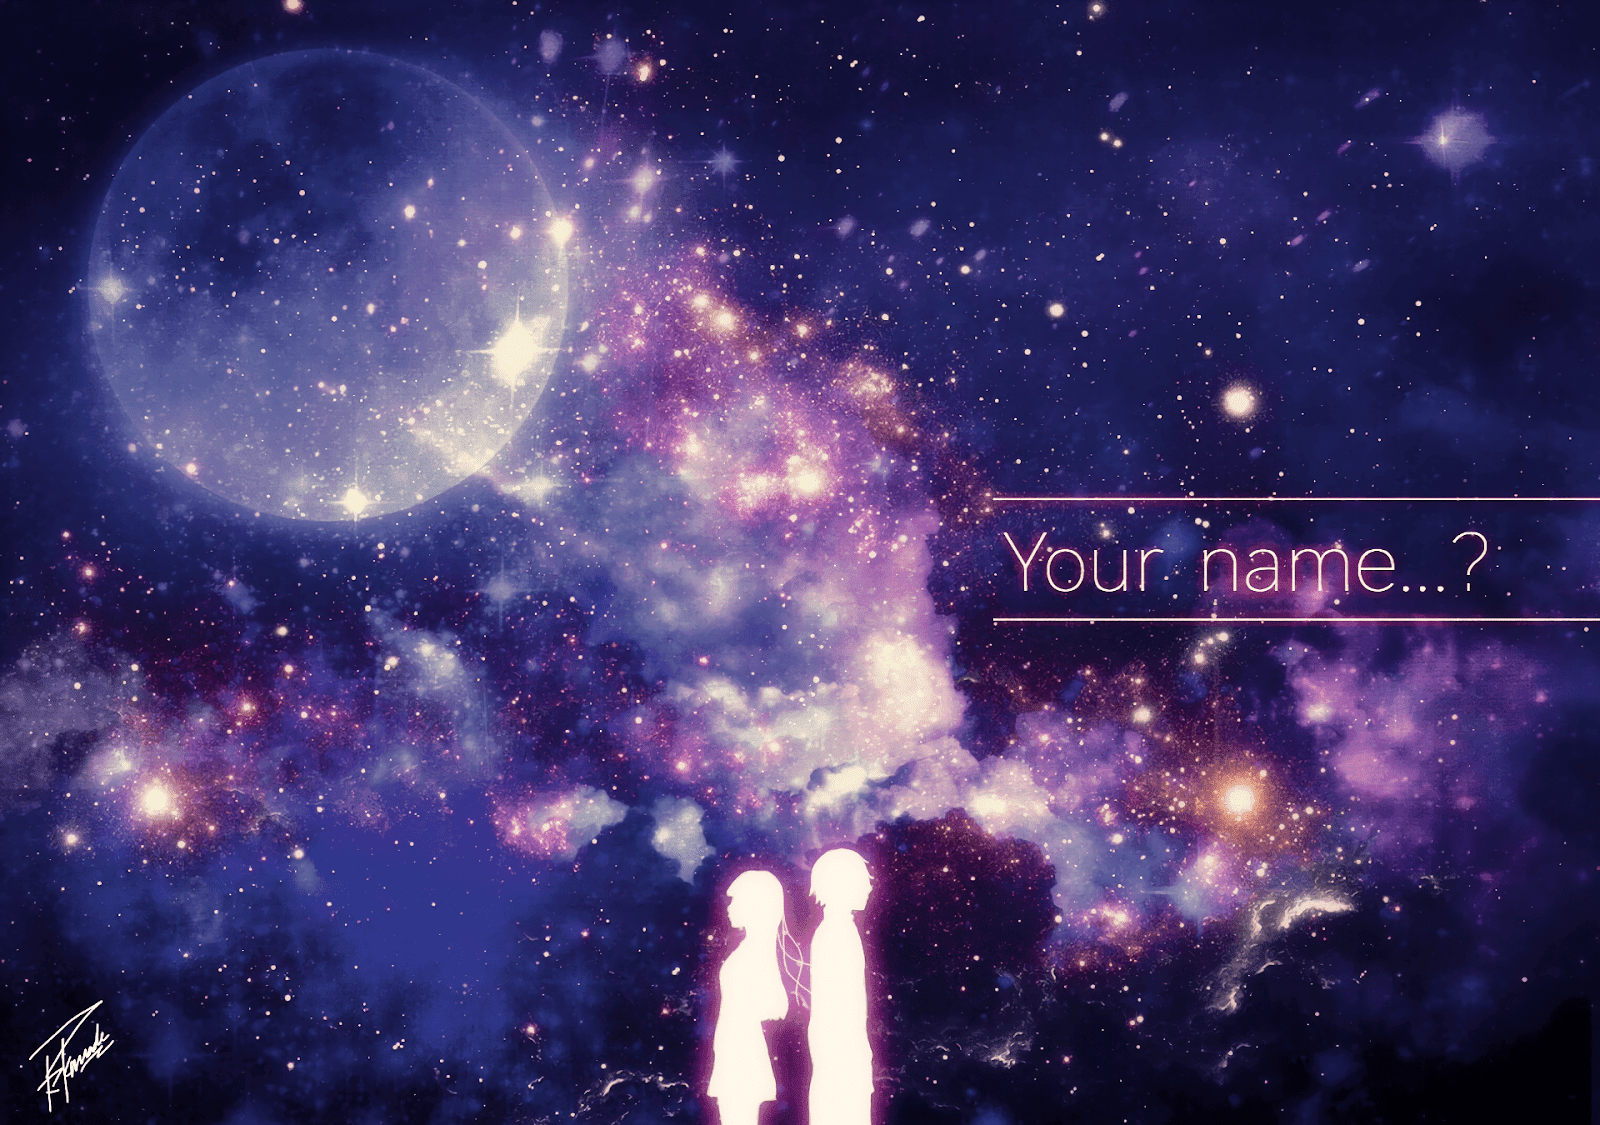 AowVN%2B%252810%2529 - [ Hình Nền ] Anime Your Name. - Kimi no Nawa full HD cực đẹp | Anime Wallpaper